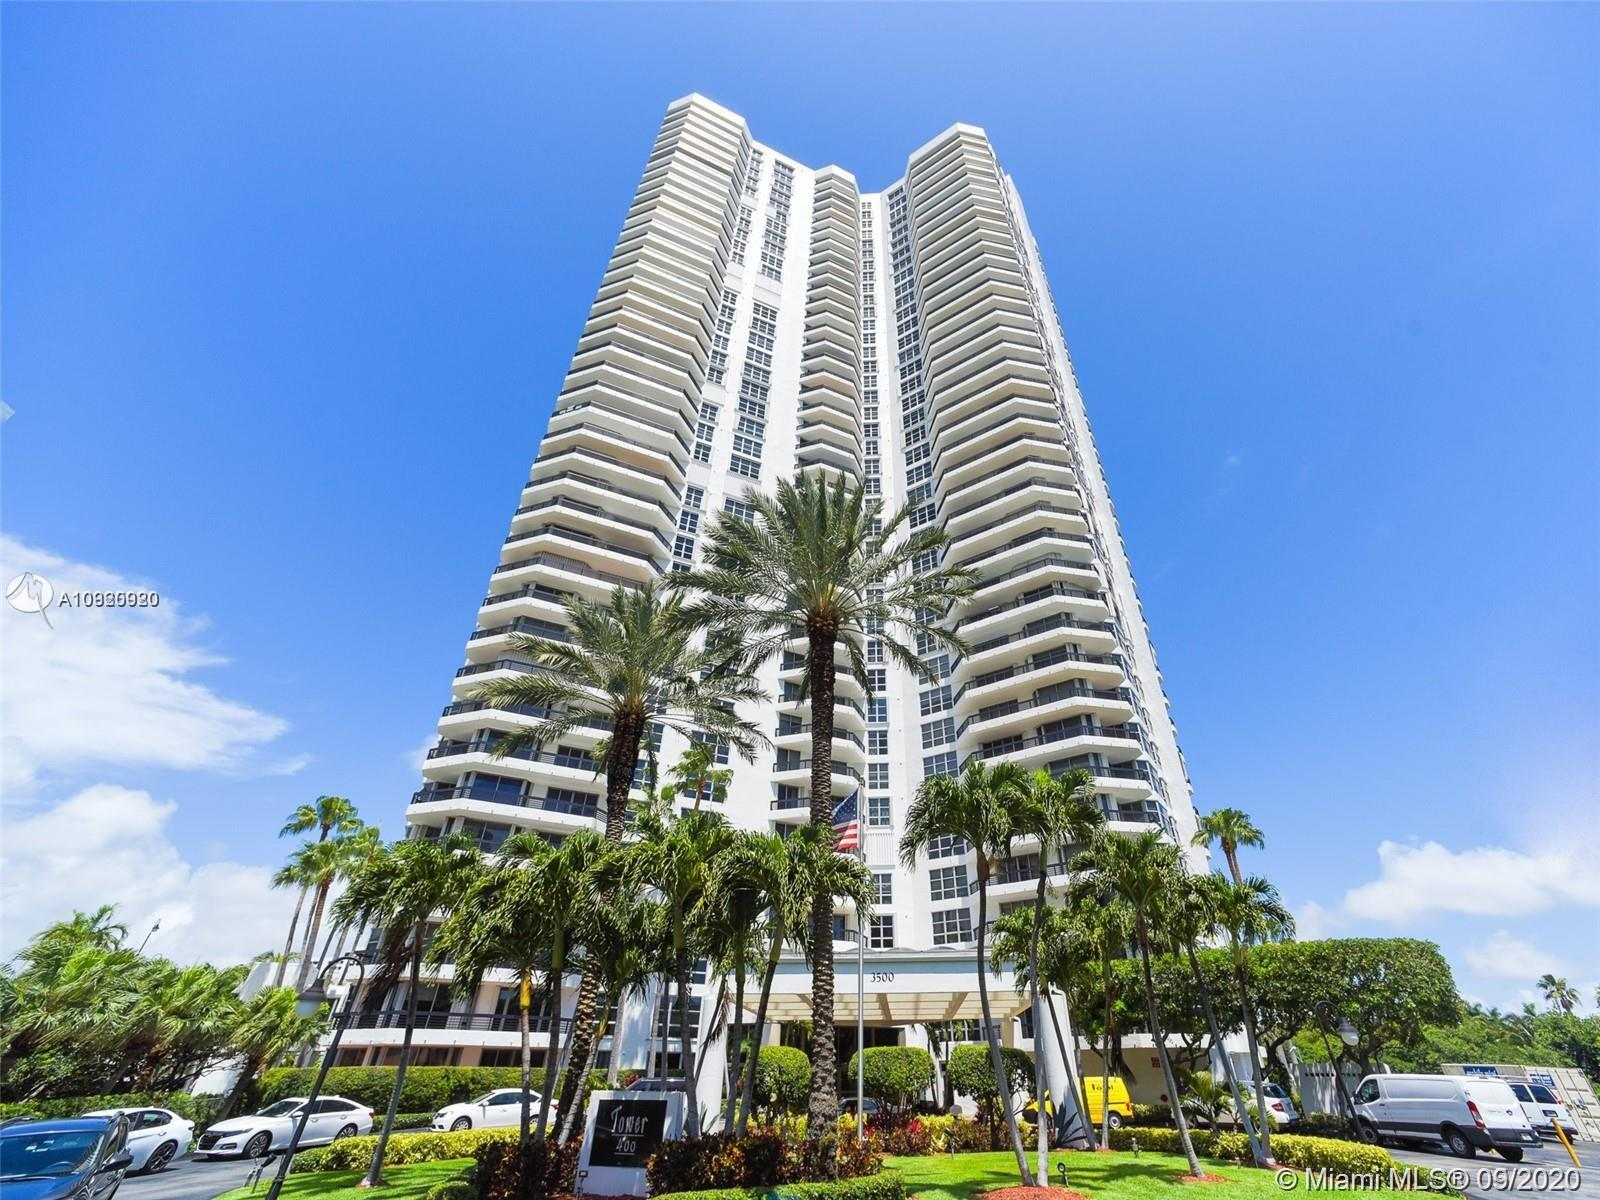 COMPLETELY REMODELED 2BED / 2BATH, HIGH FLOOR W/GREAT VIEWS***** ALL AMENITIES INCLUDED, GYM, POOLS,